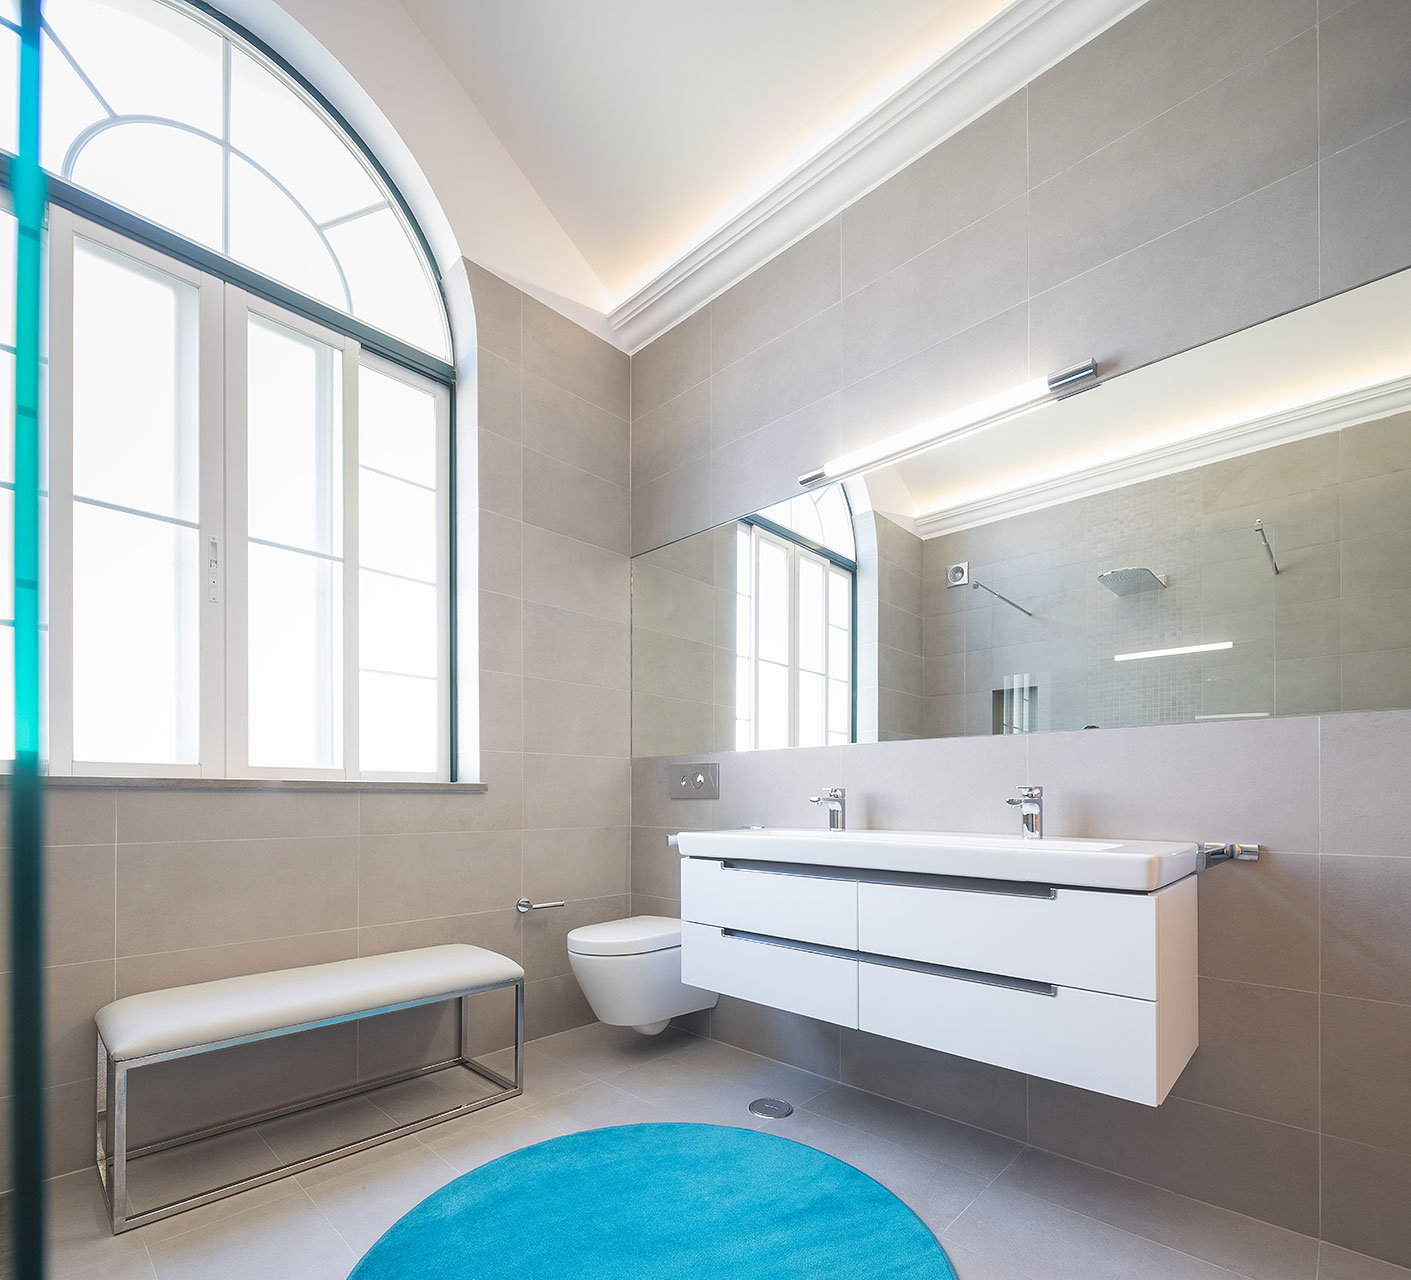 Bathroom Decoration and interior design in Algarve